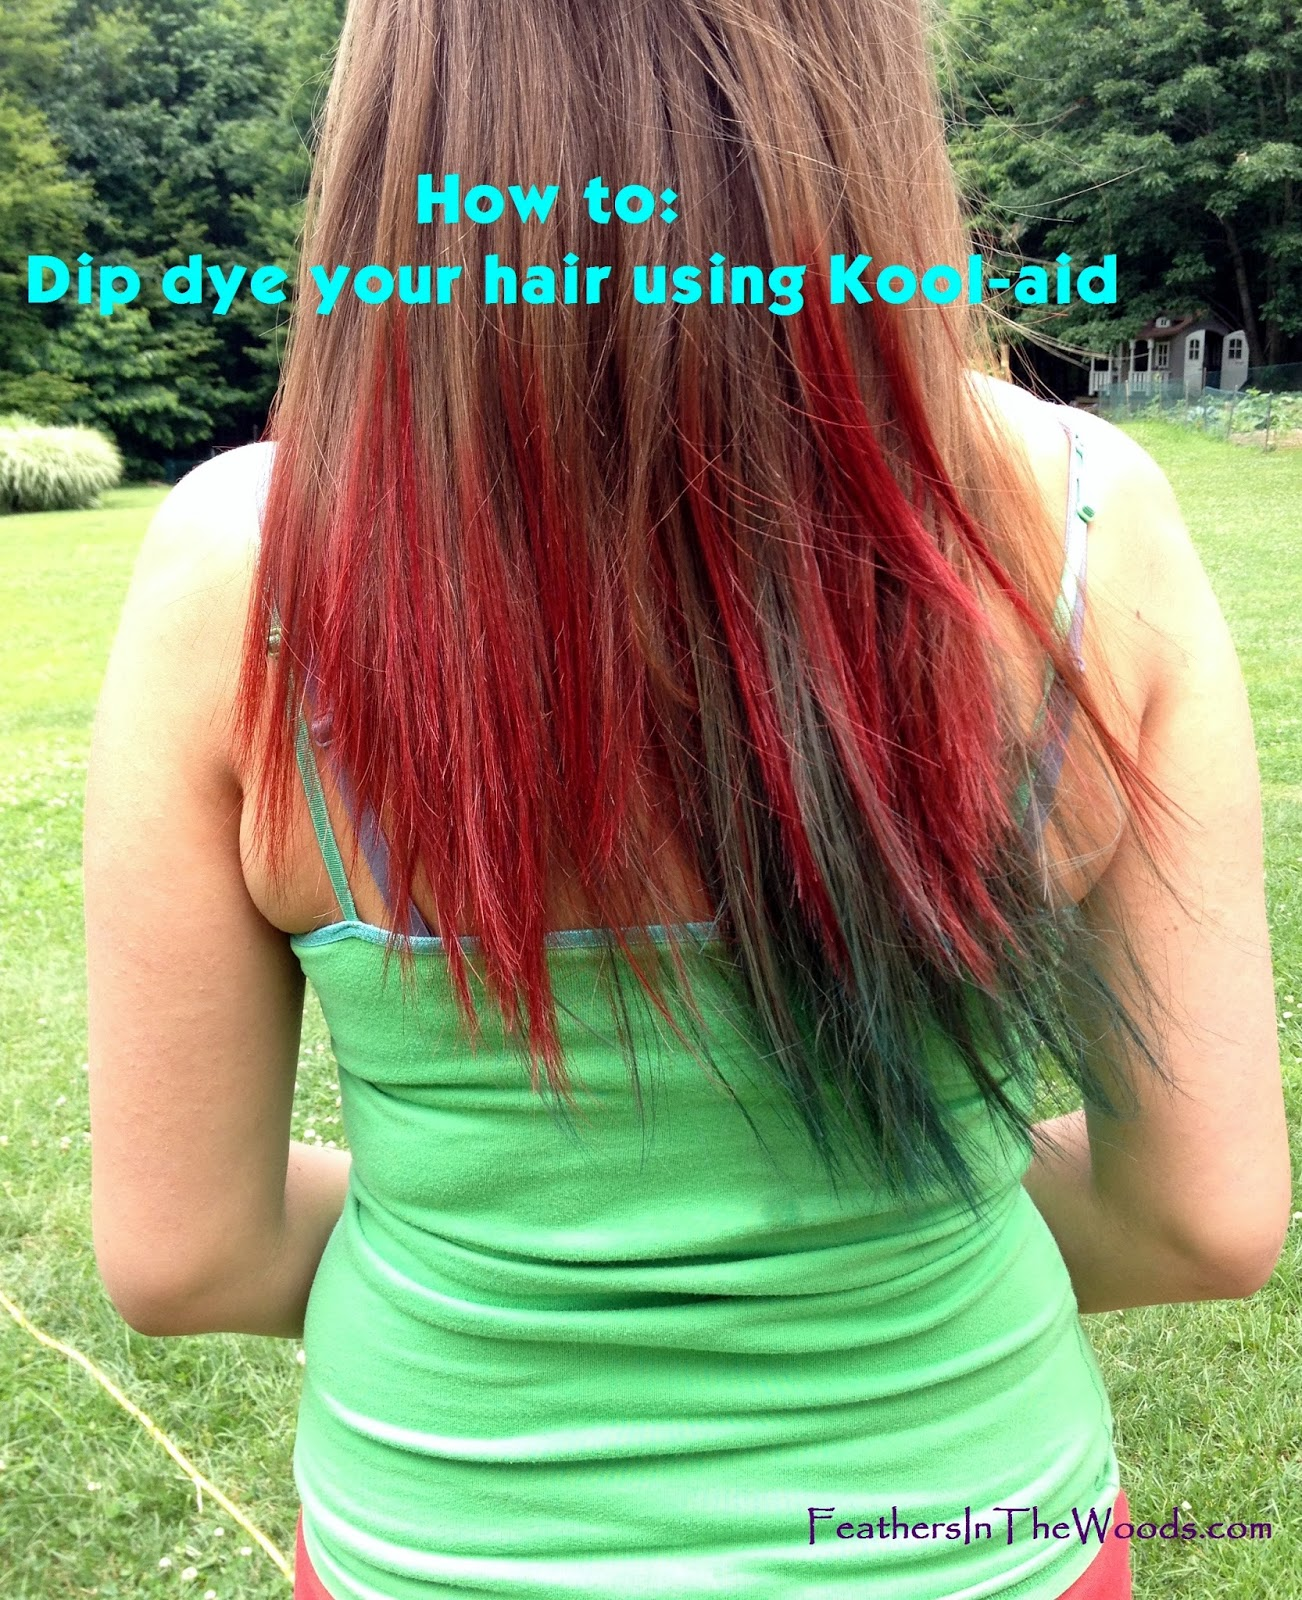 Feathers in the woods: Dip dyed Kool-aid hair